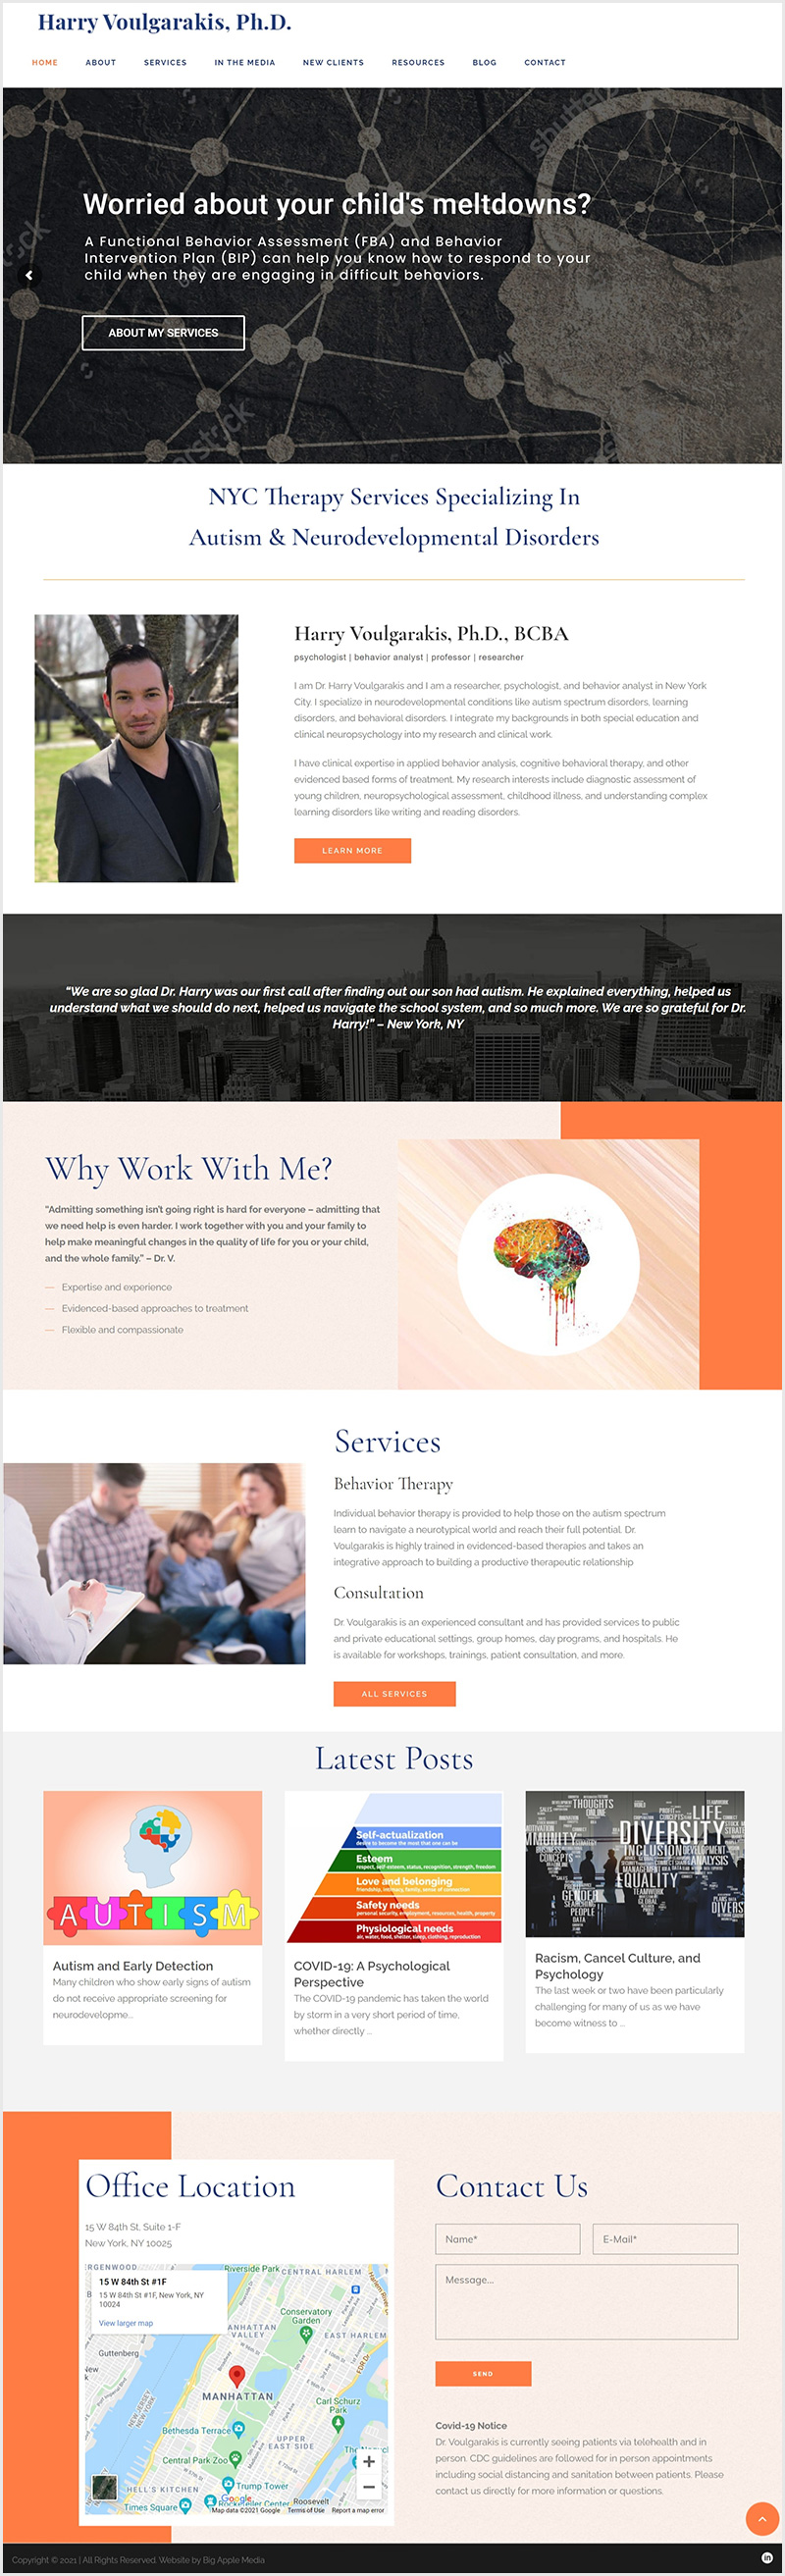 web design example after